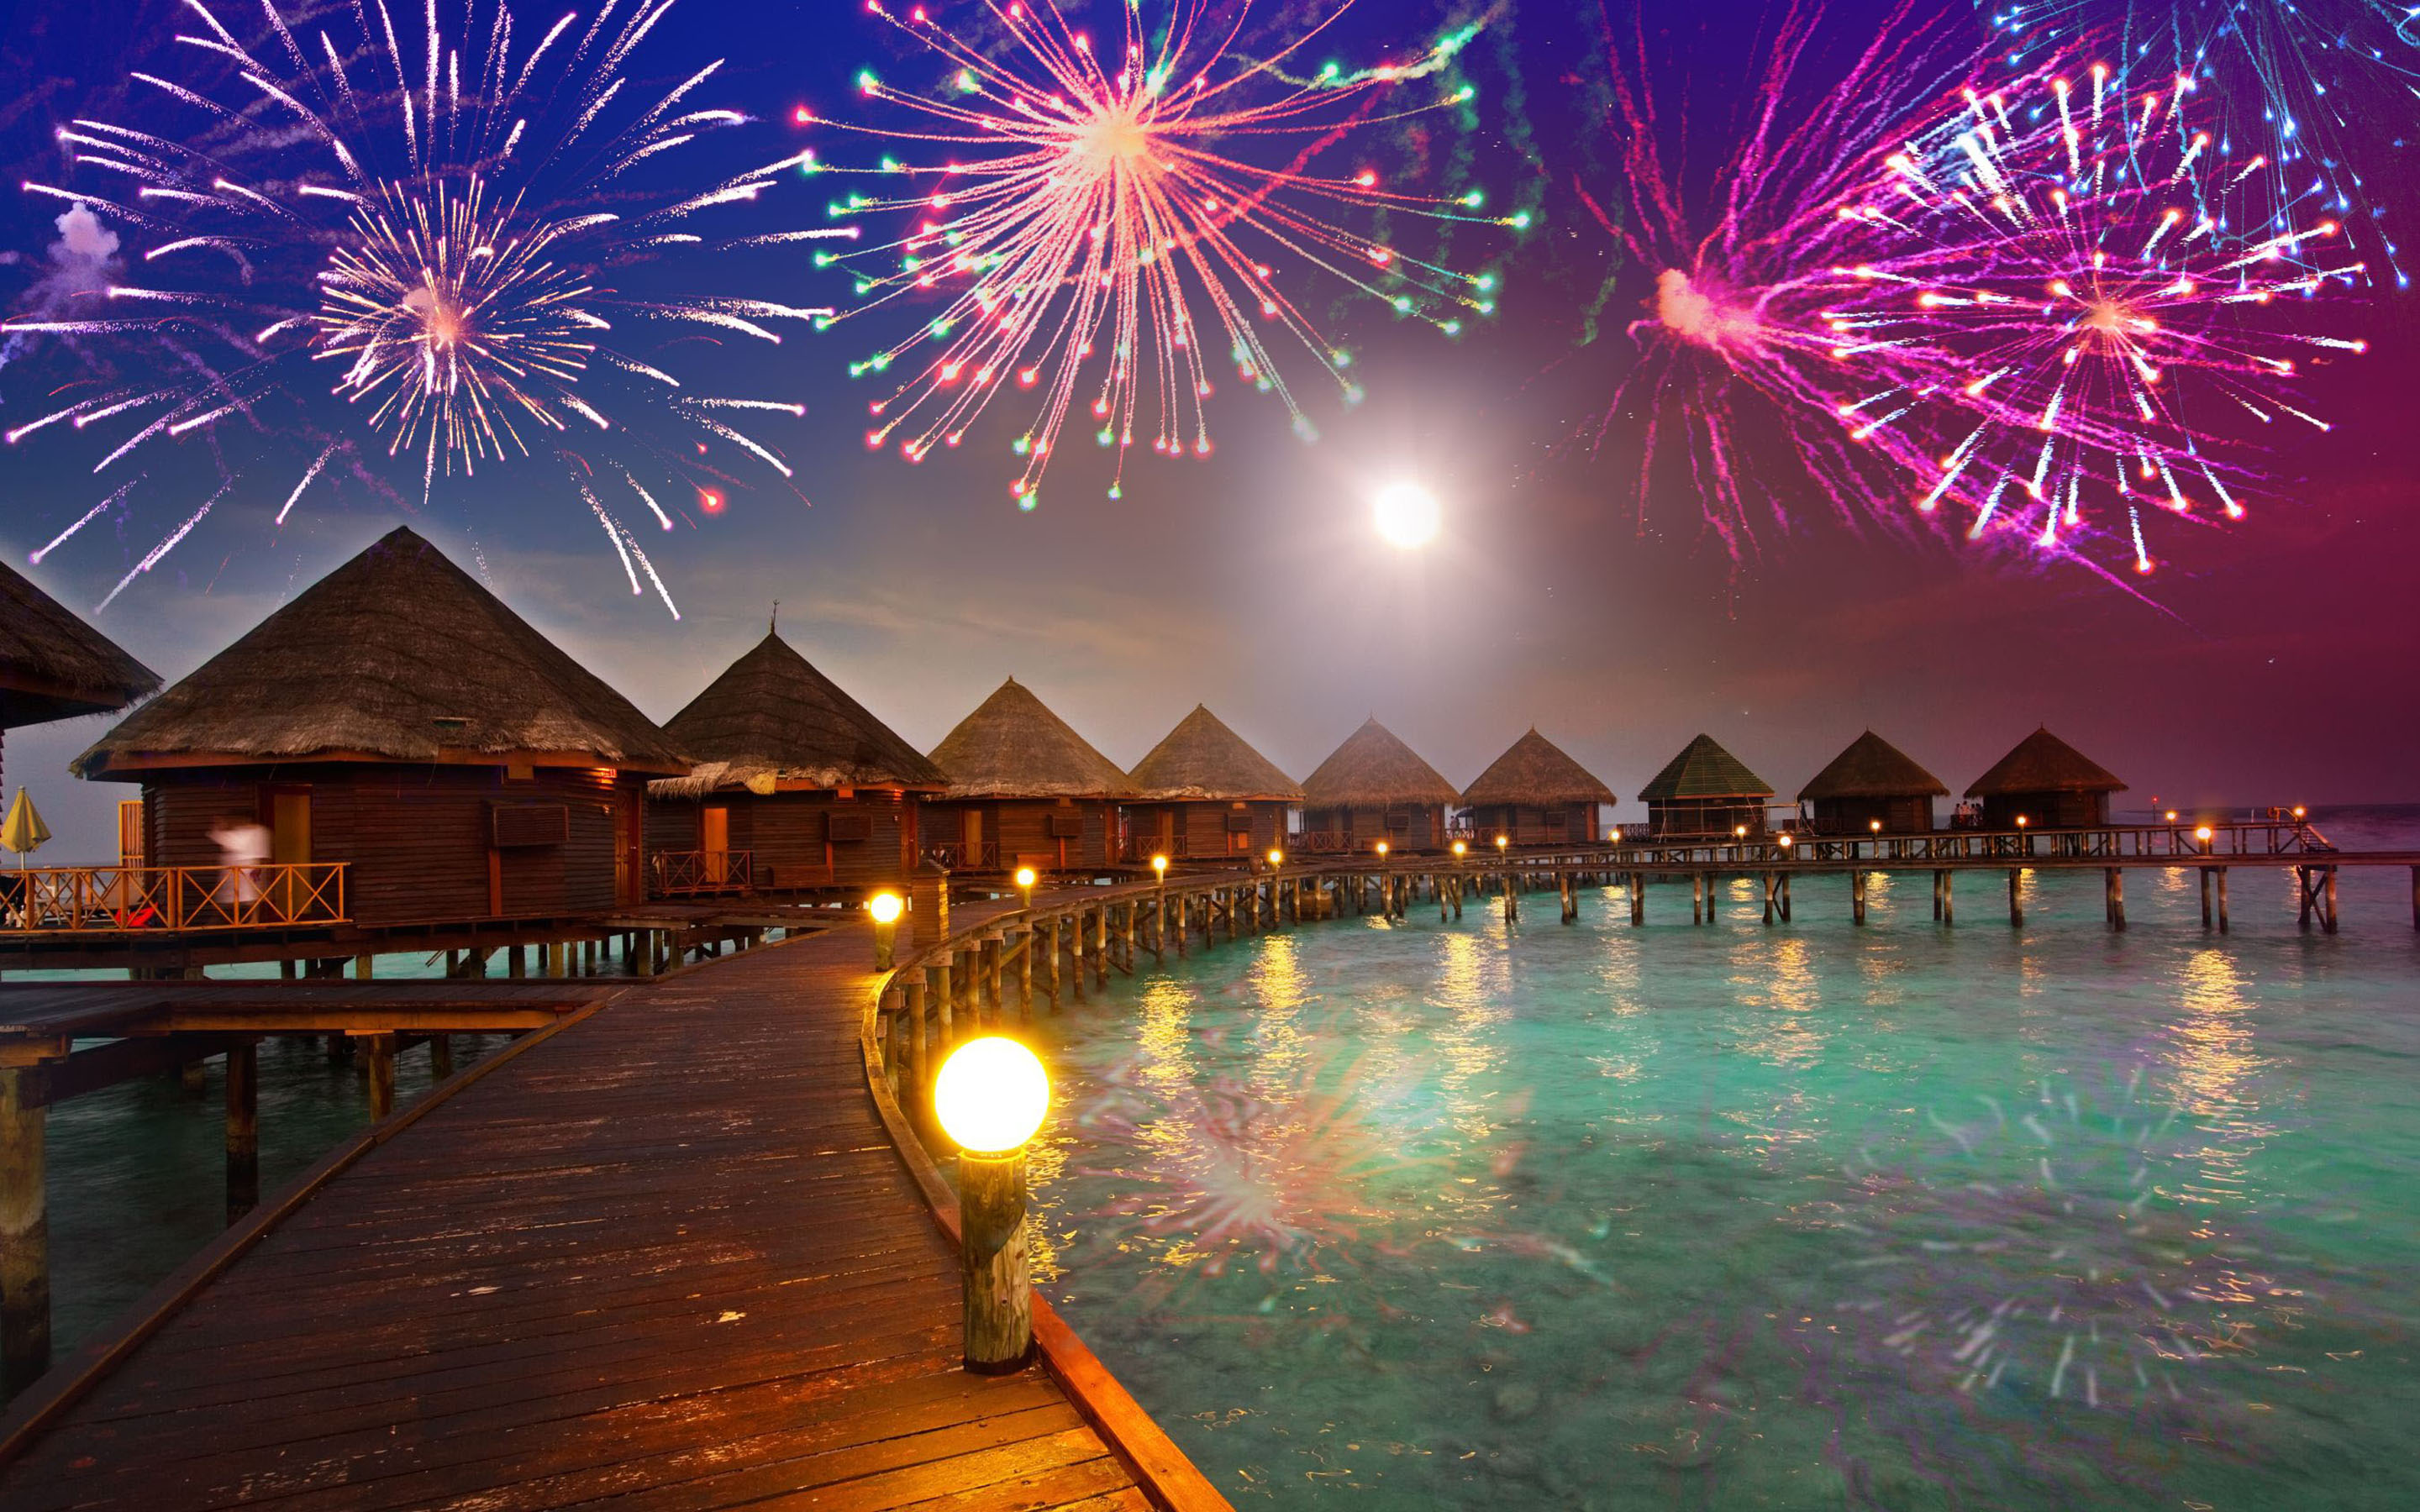 Christmas And New Year In Maldives Hd Desktop Wallpaper